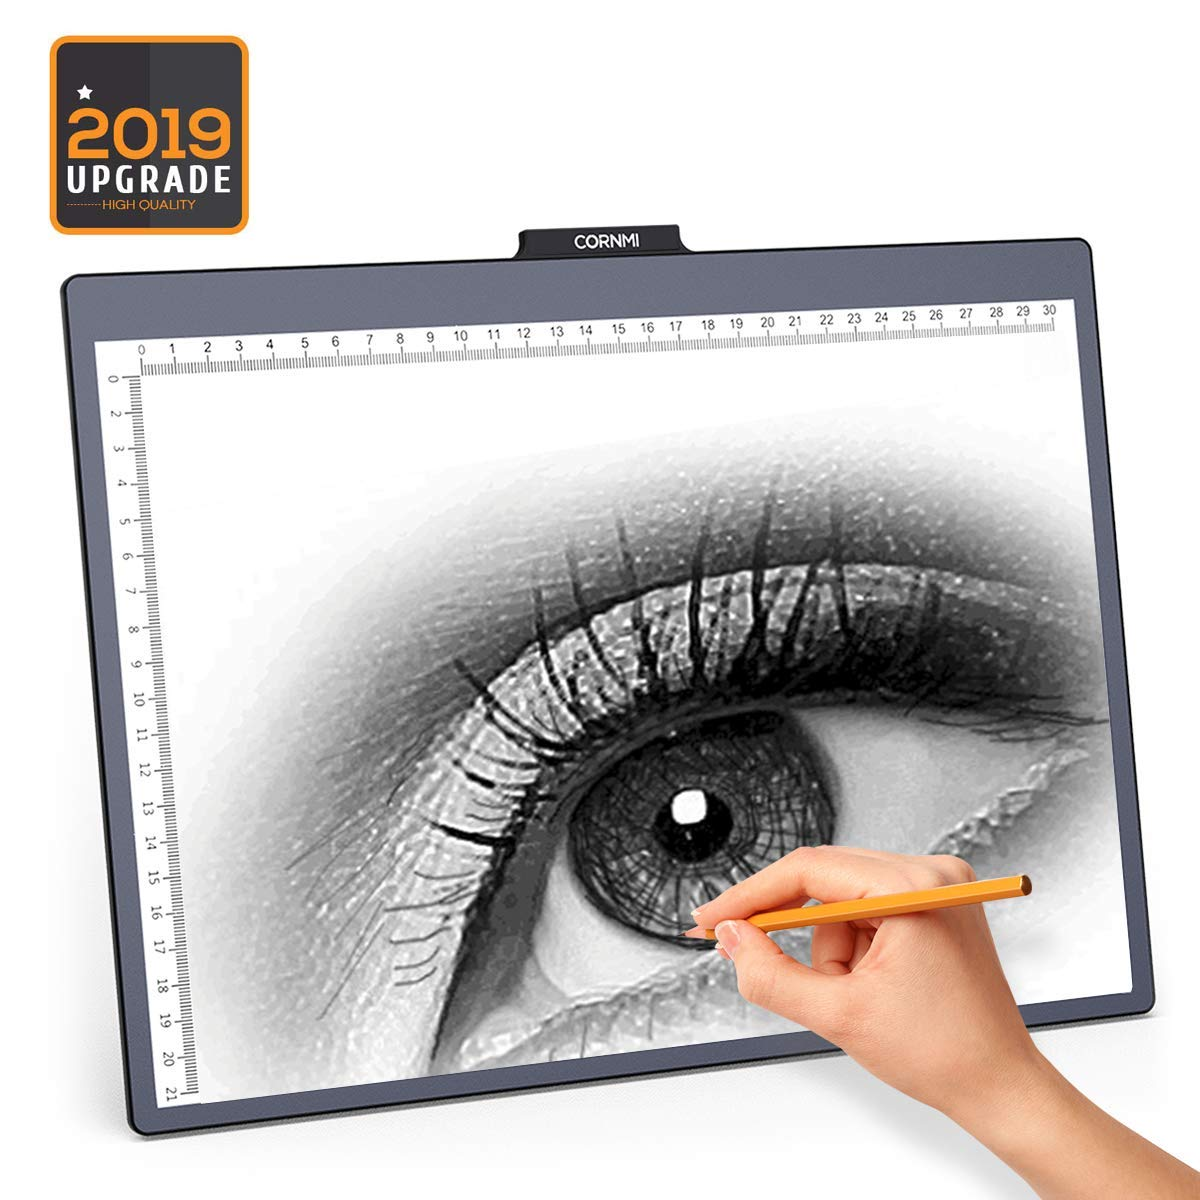 CORNMI A4 LED Light Box Tracer 10-Level Dimmable Brightness with 6500K White LED Eye-Protected USB Power Light Table for Kids Artists,X-ray,Viewing,Drawing,Animation,Sketching,Upgrade Design